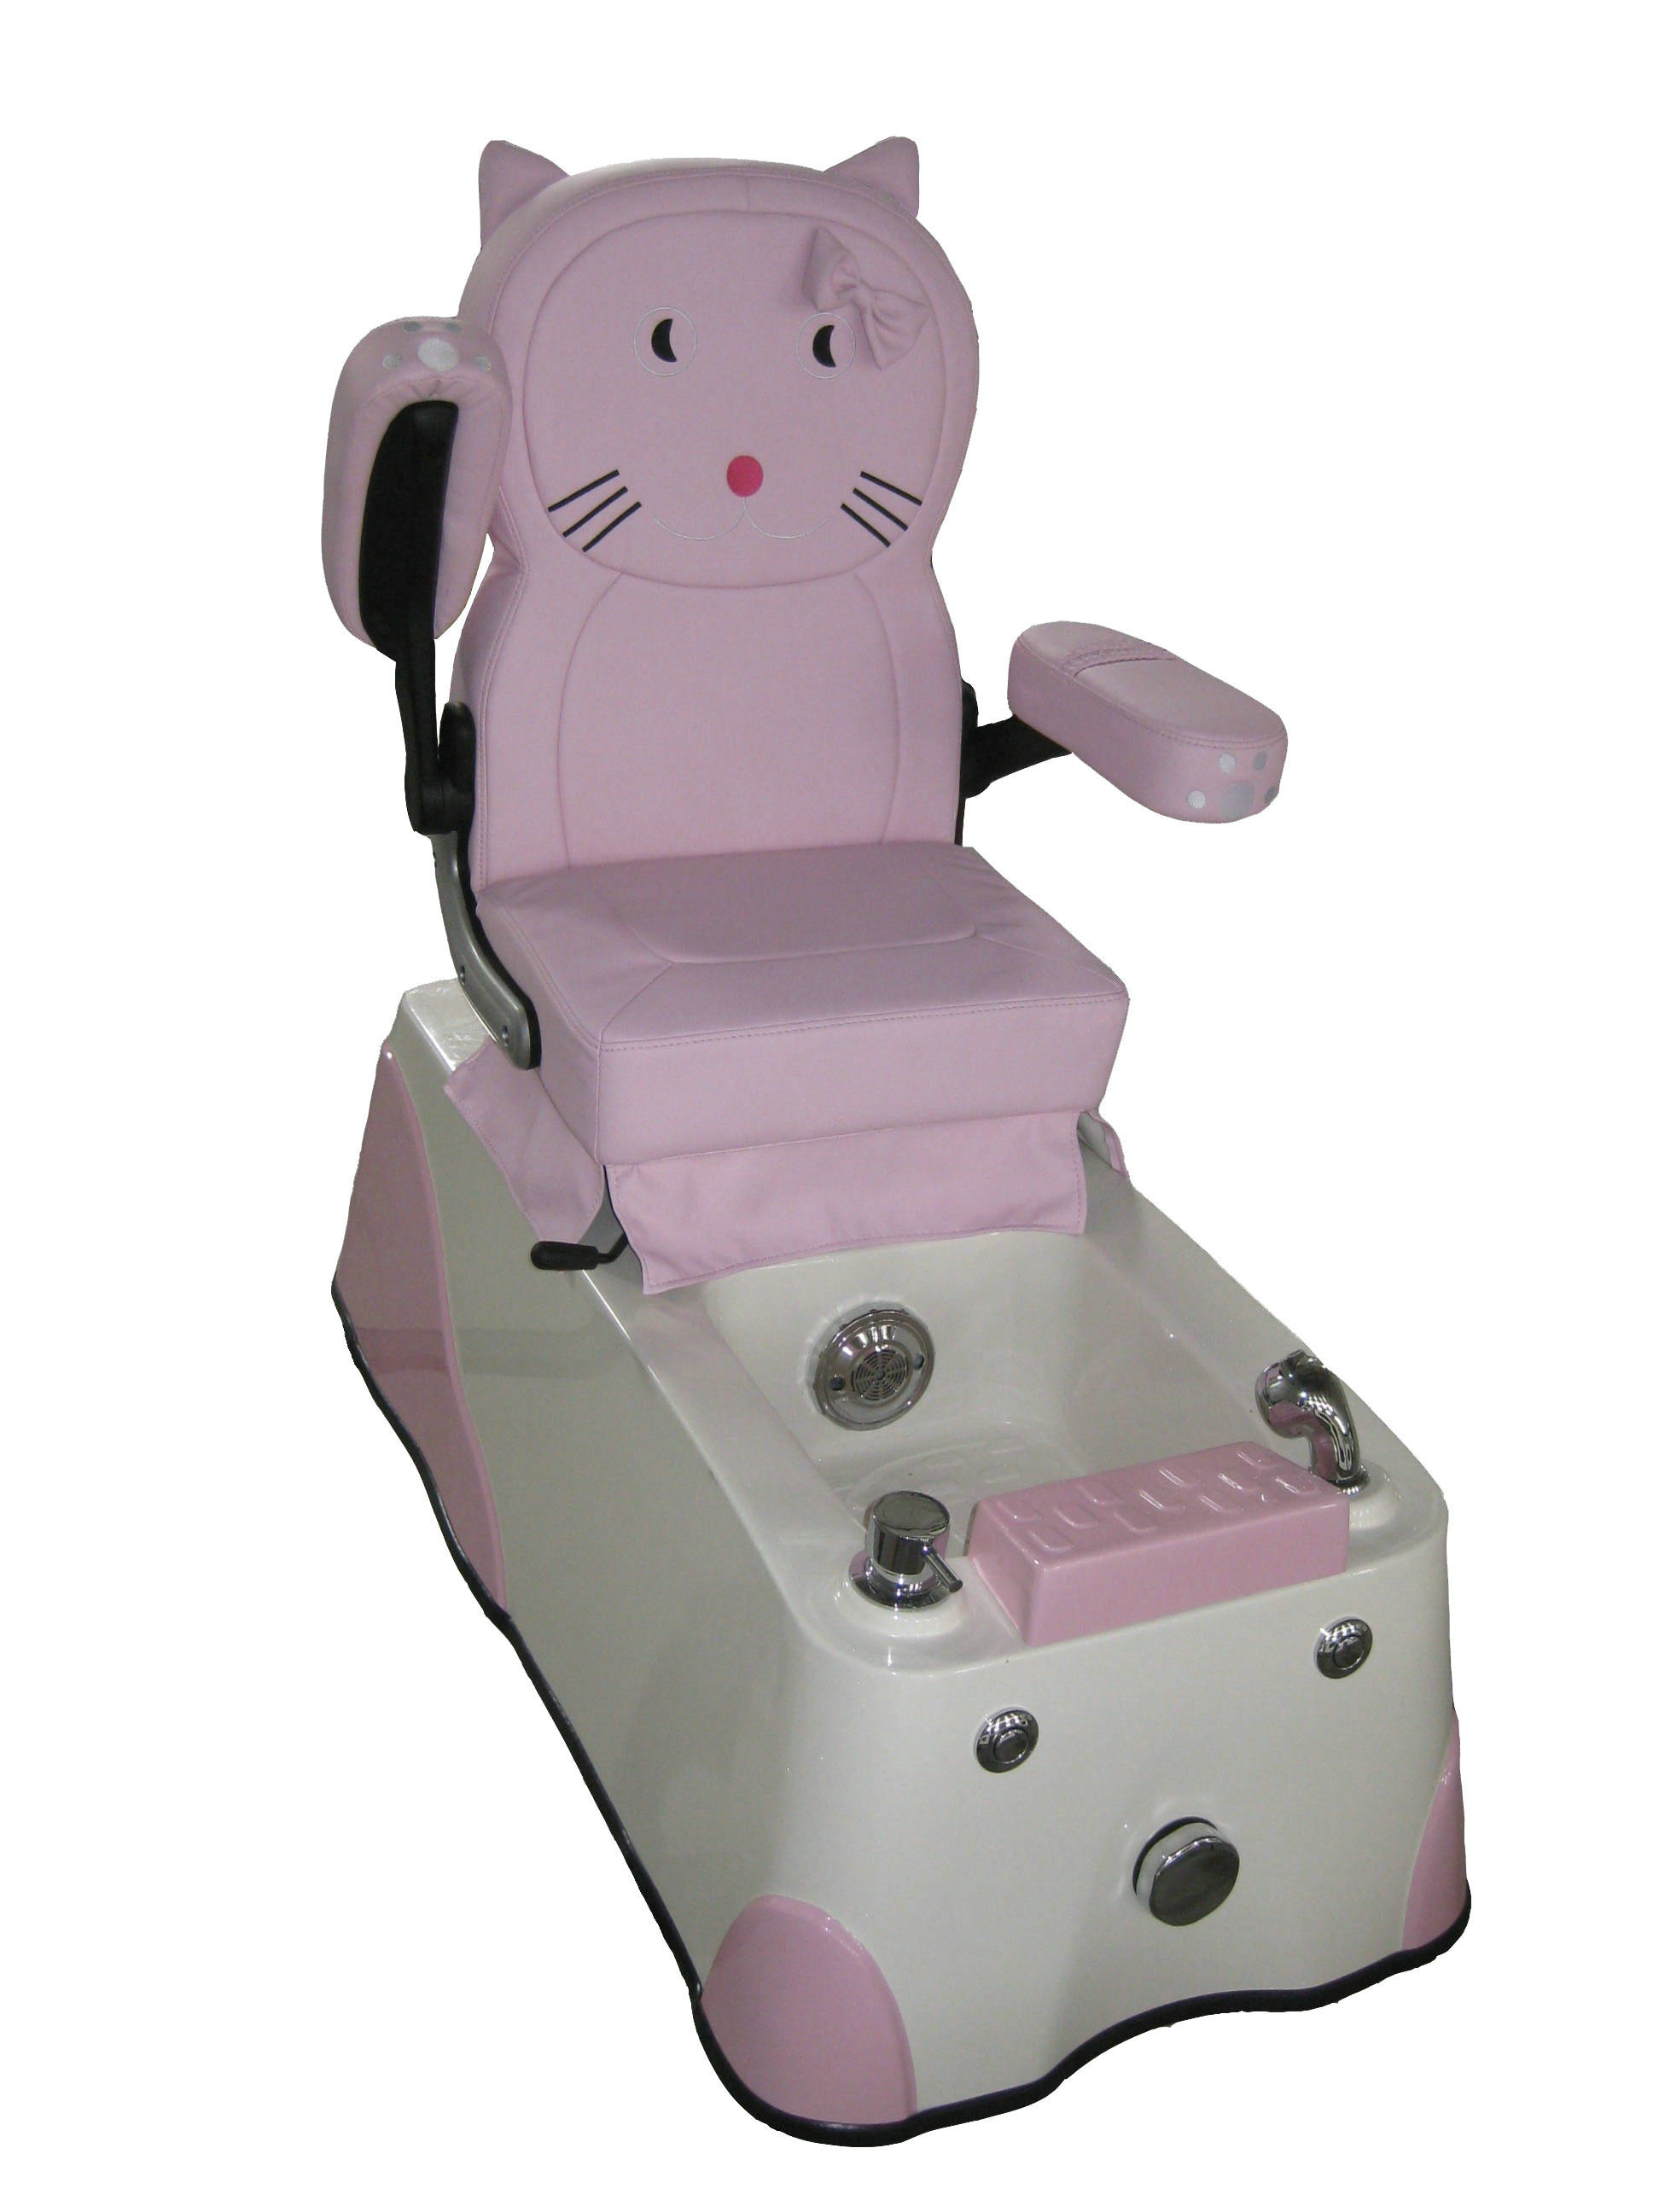 Pedicure Spa Chair Spa Alden Pedicure Spa Massage Chair